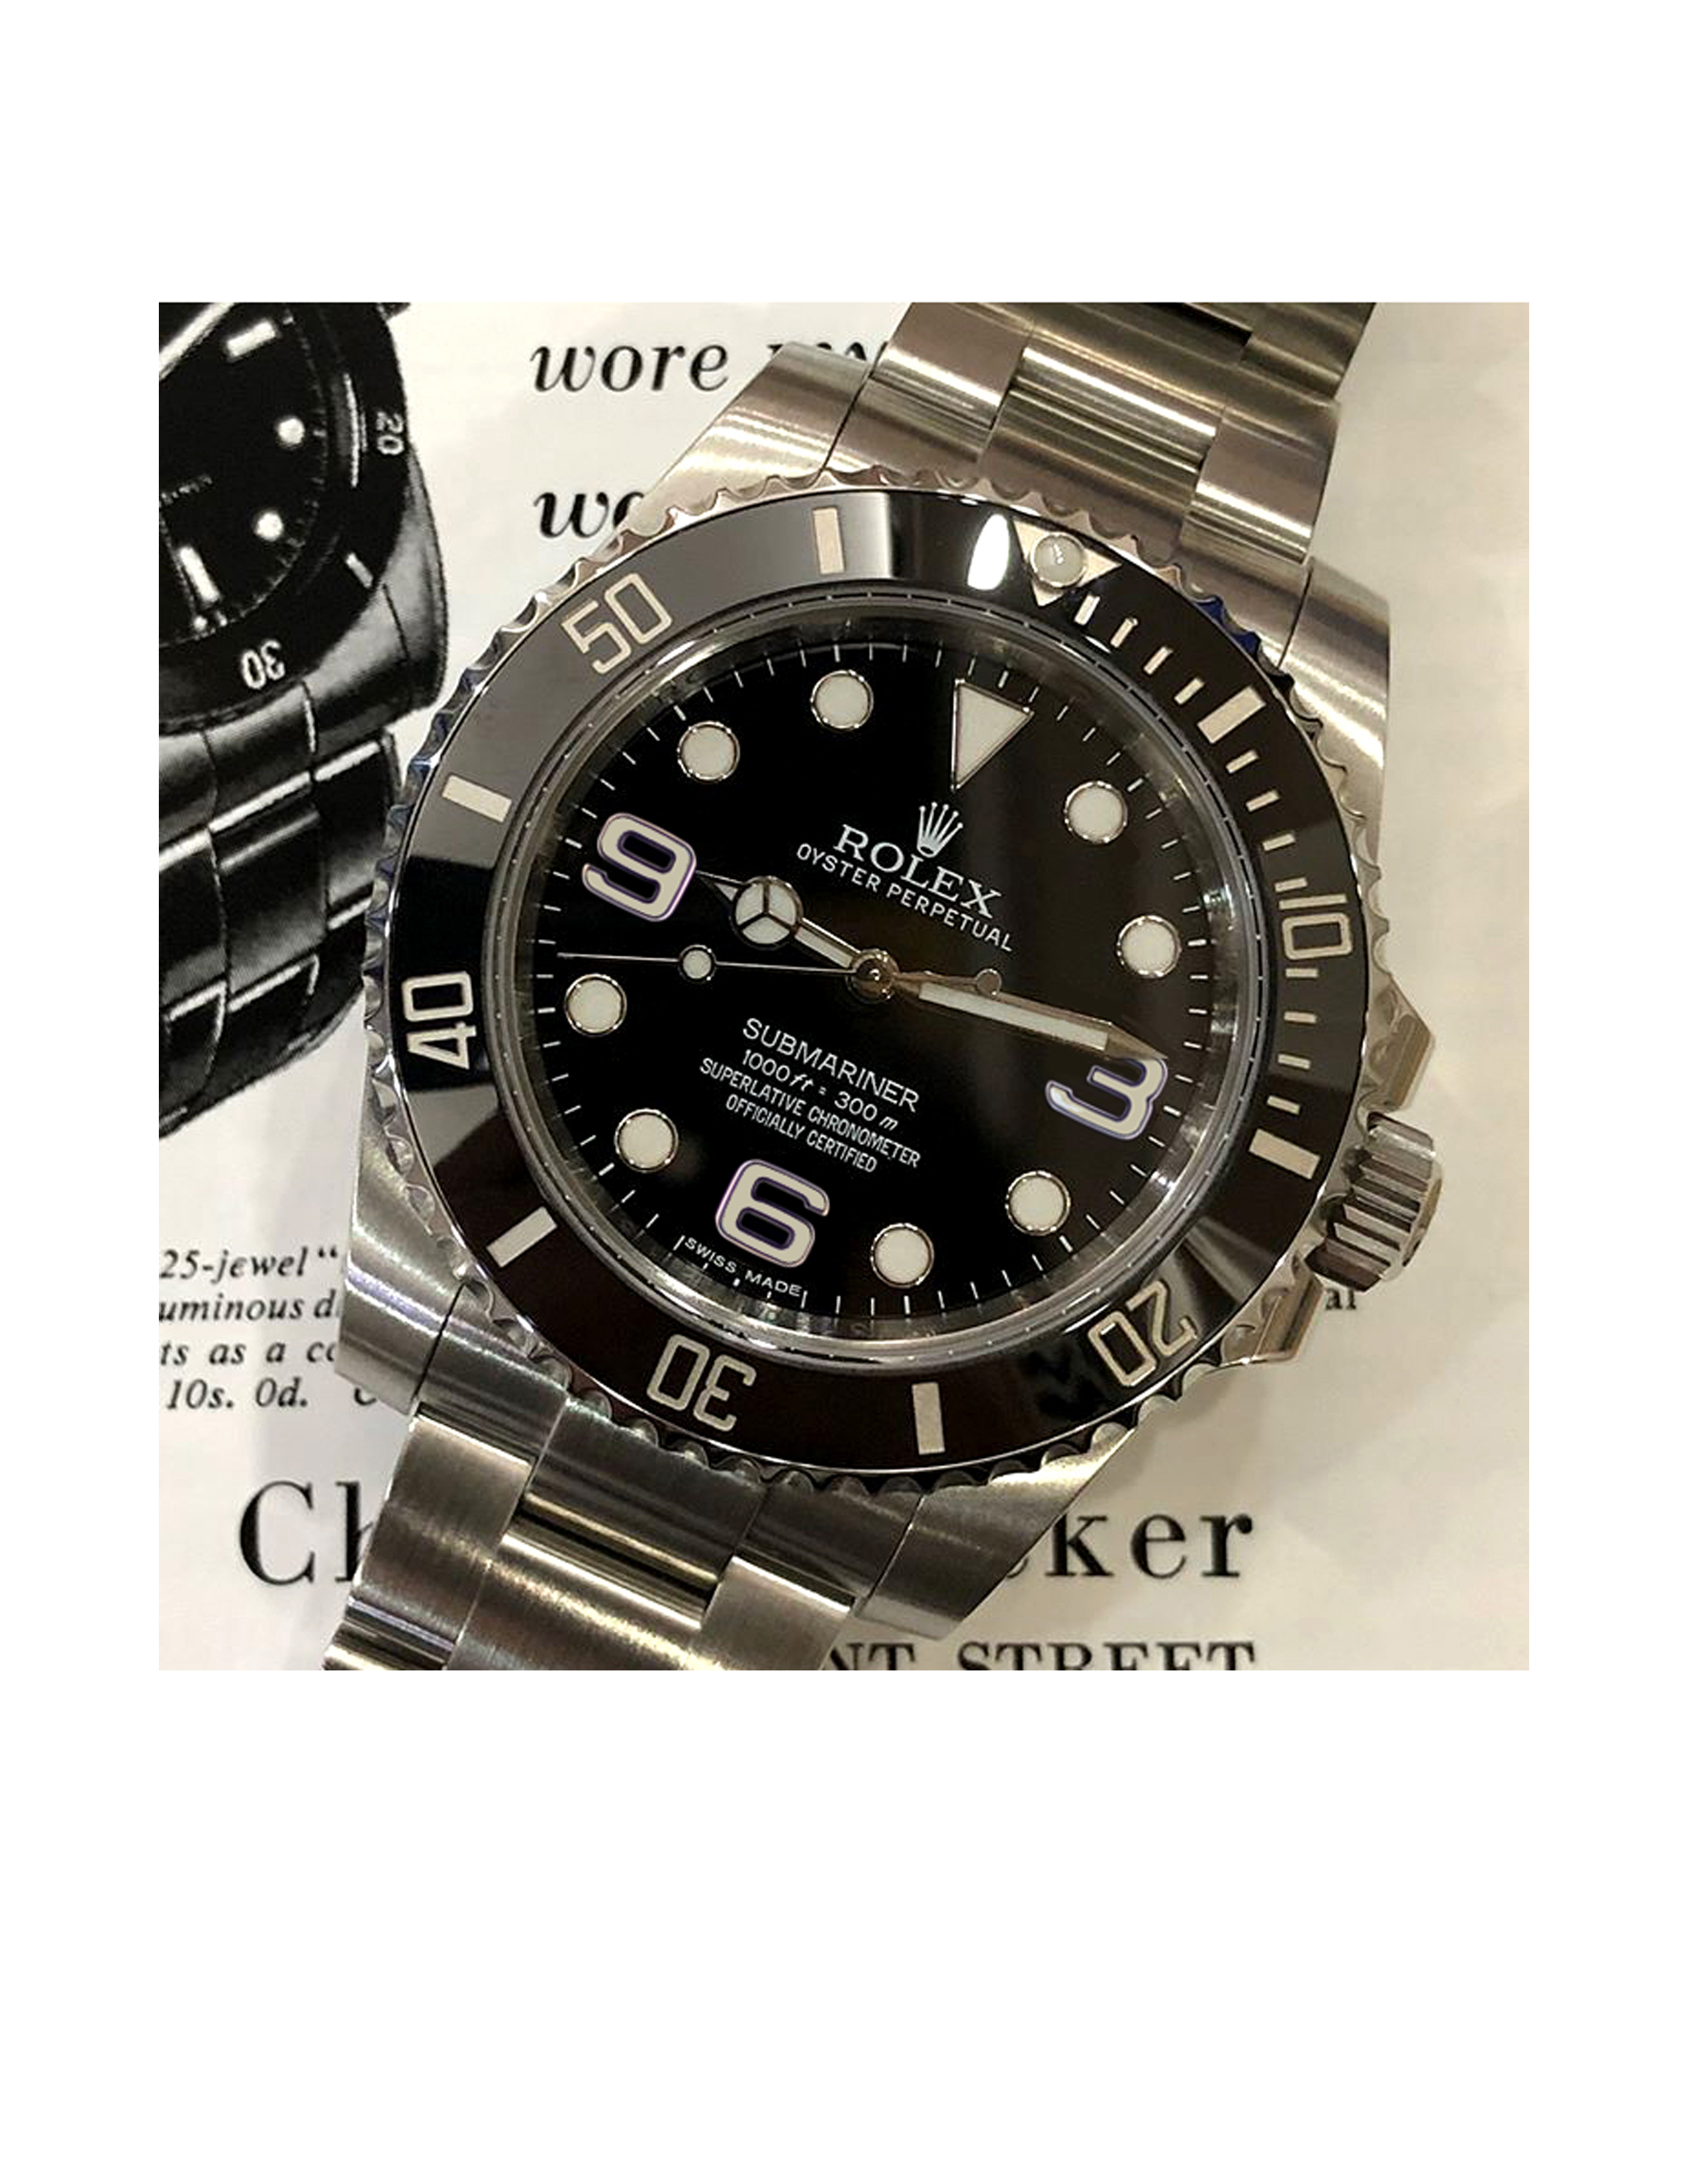 Click image for larger version.  Name:ROLEX EXPLORER.jpg Views:113 Size:1.92 MB ID:15029343